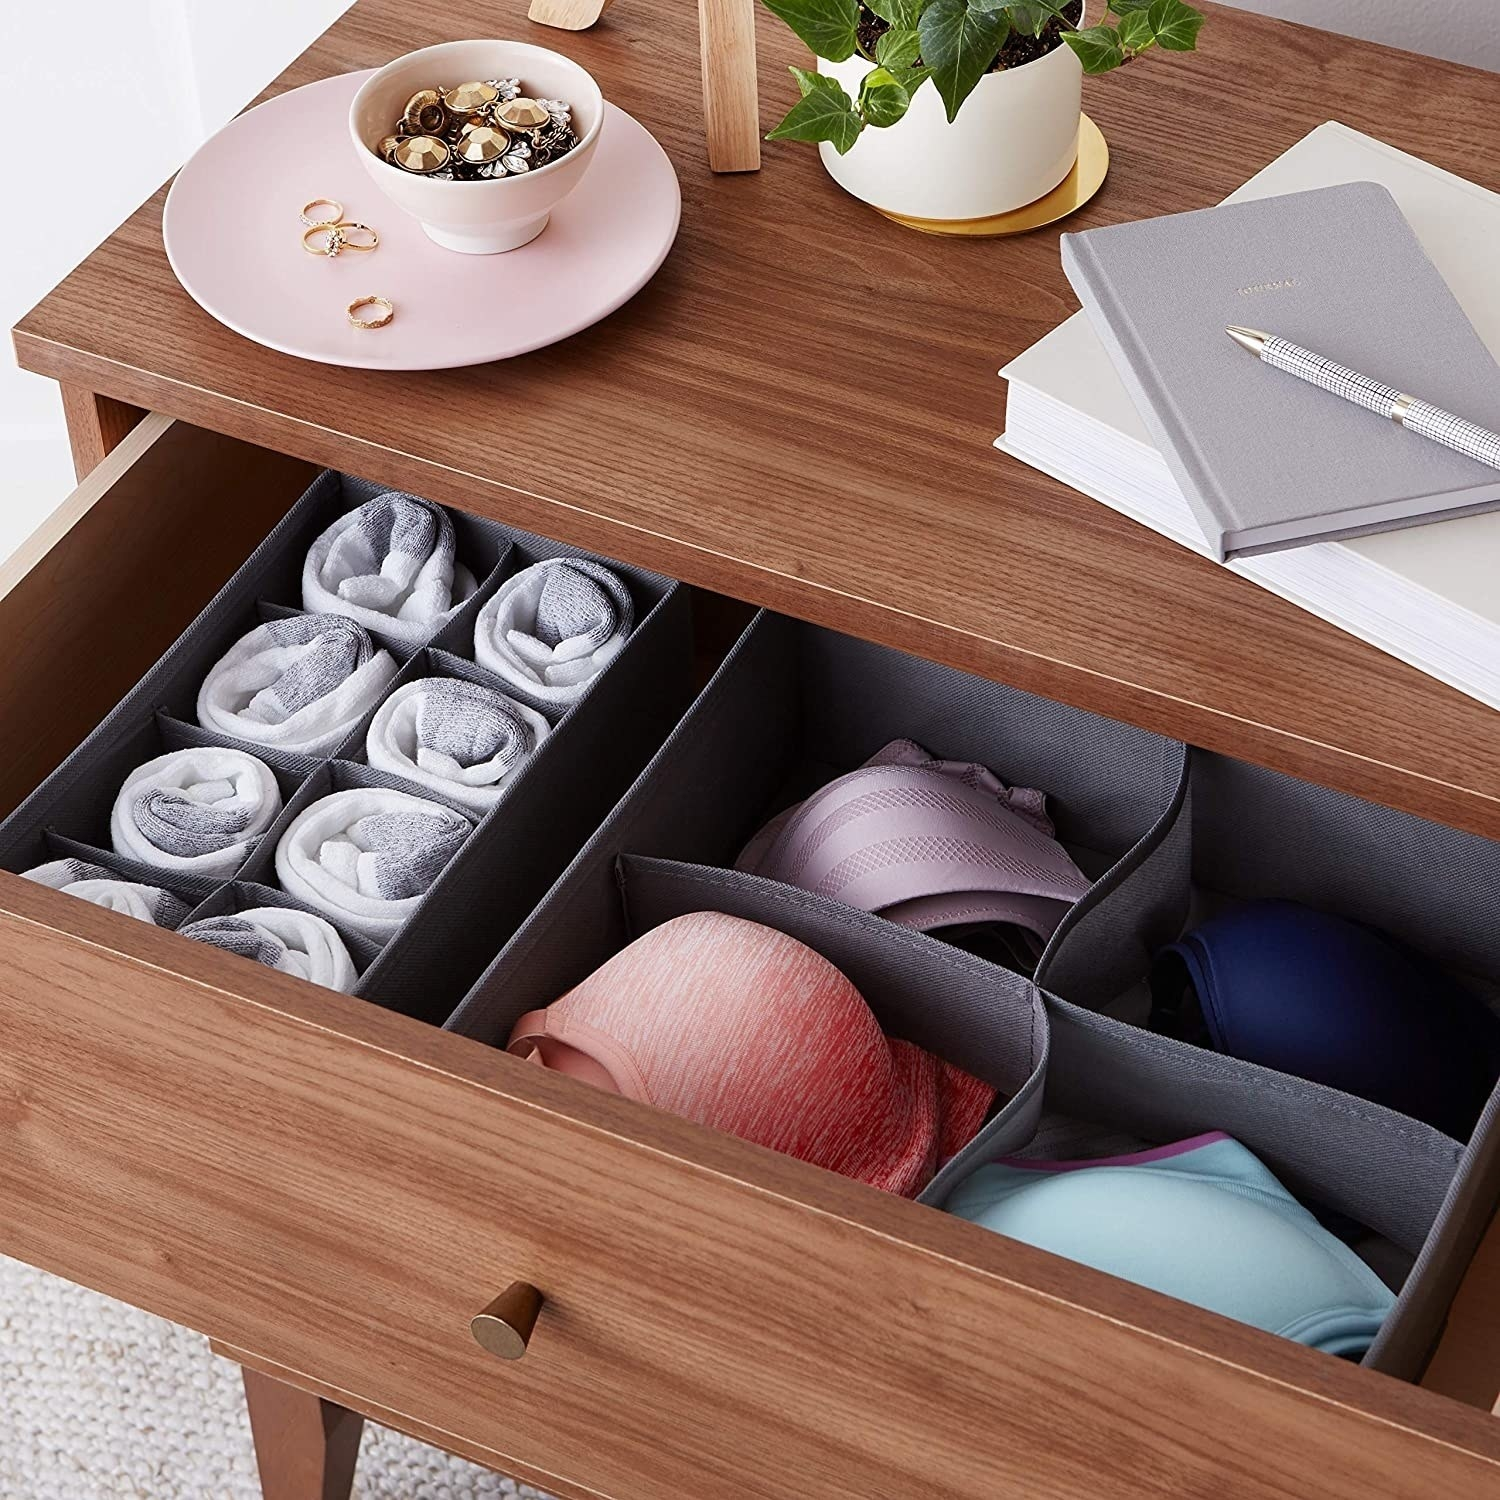 The drawer organisers pictured inside a drawer.